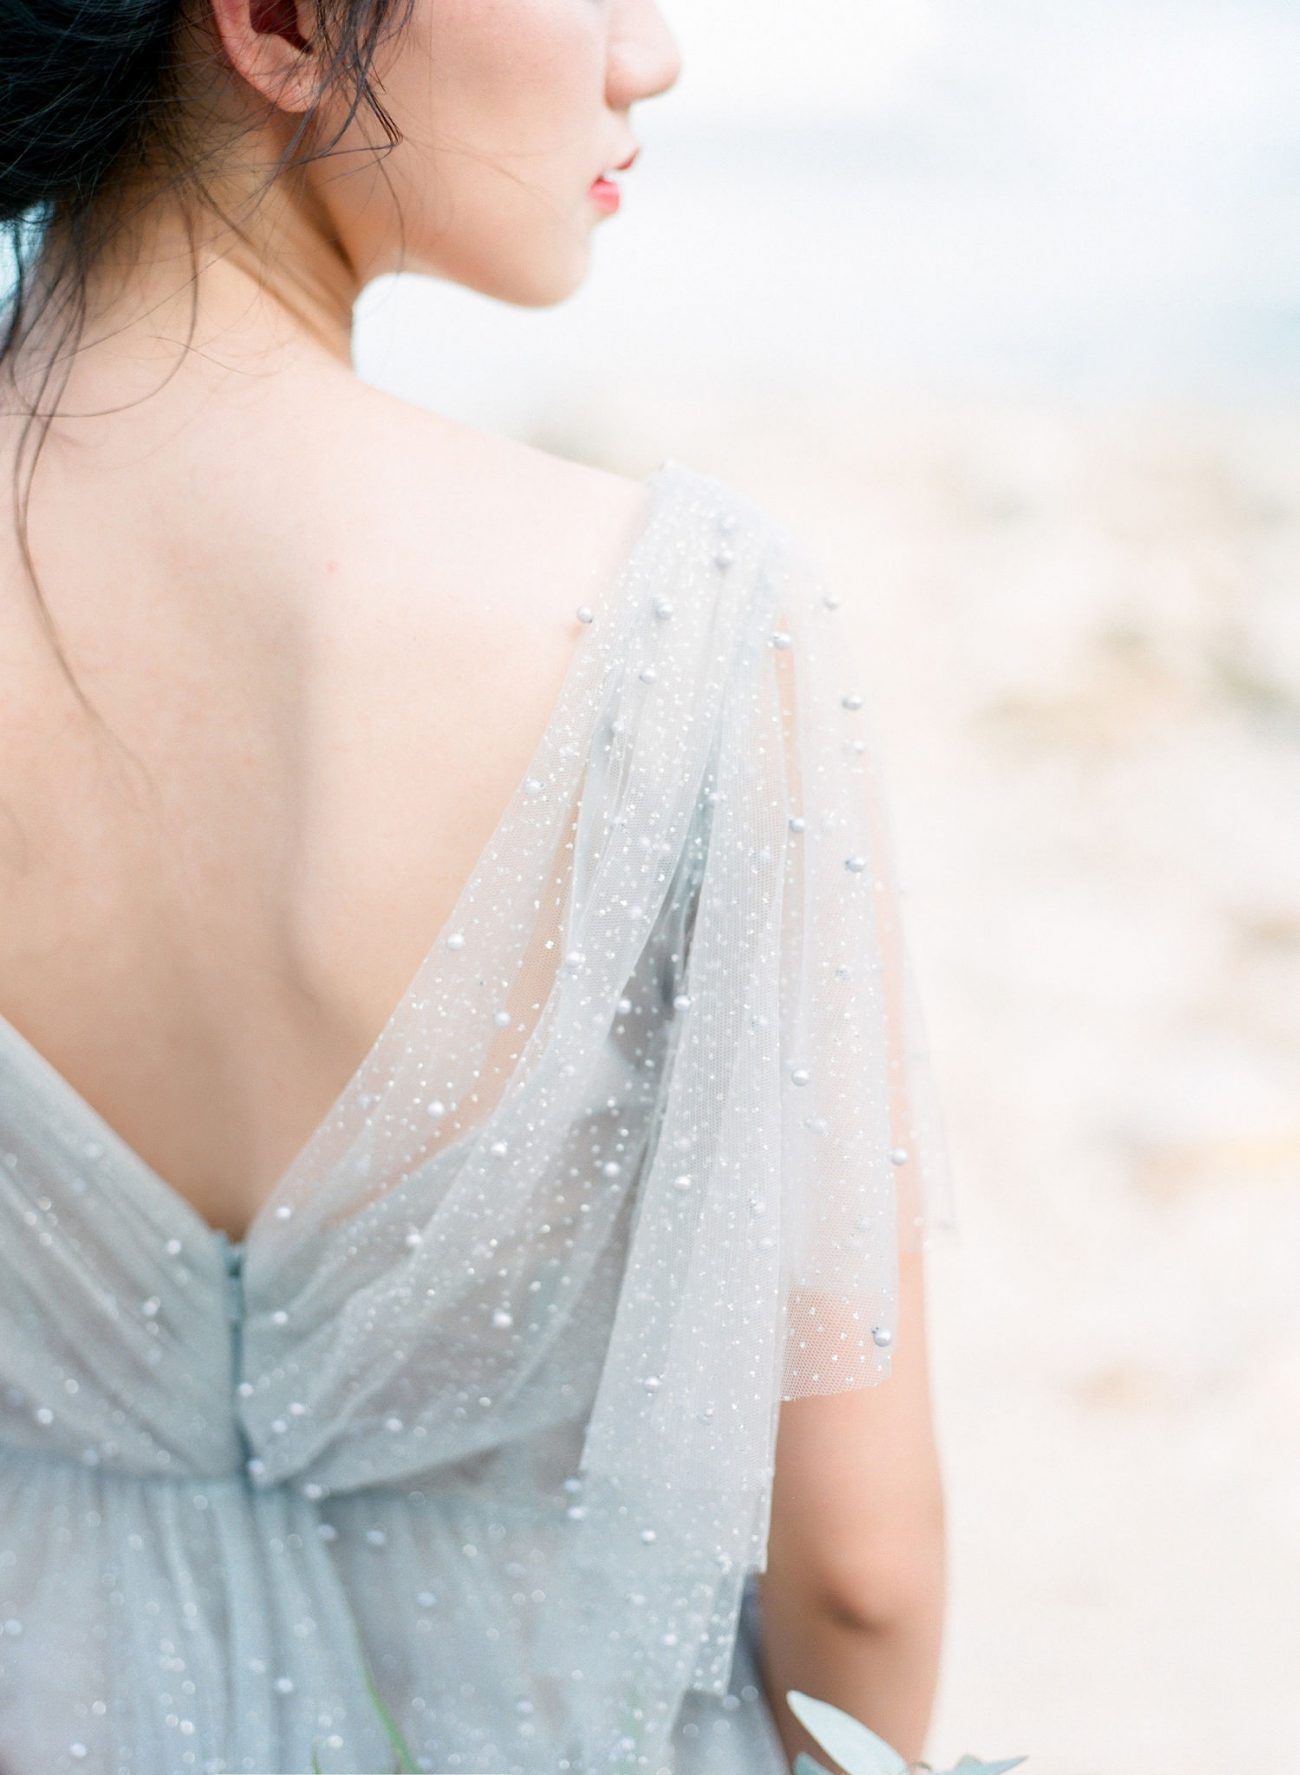 Ocean Blues Inspired This Ethereal Bridal Shoot on a Hong Kong Cliffside - Once Wed